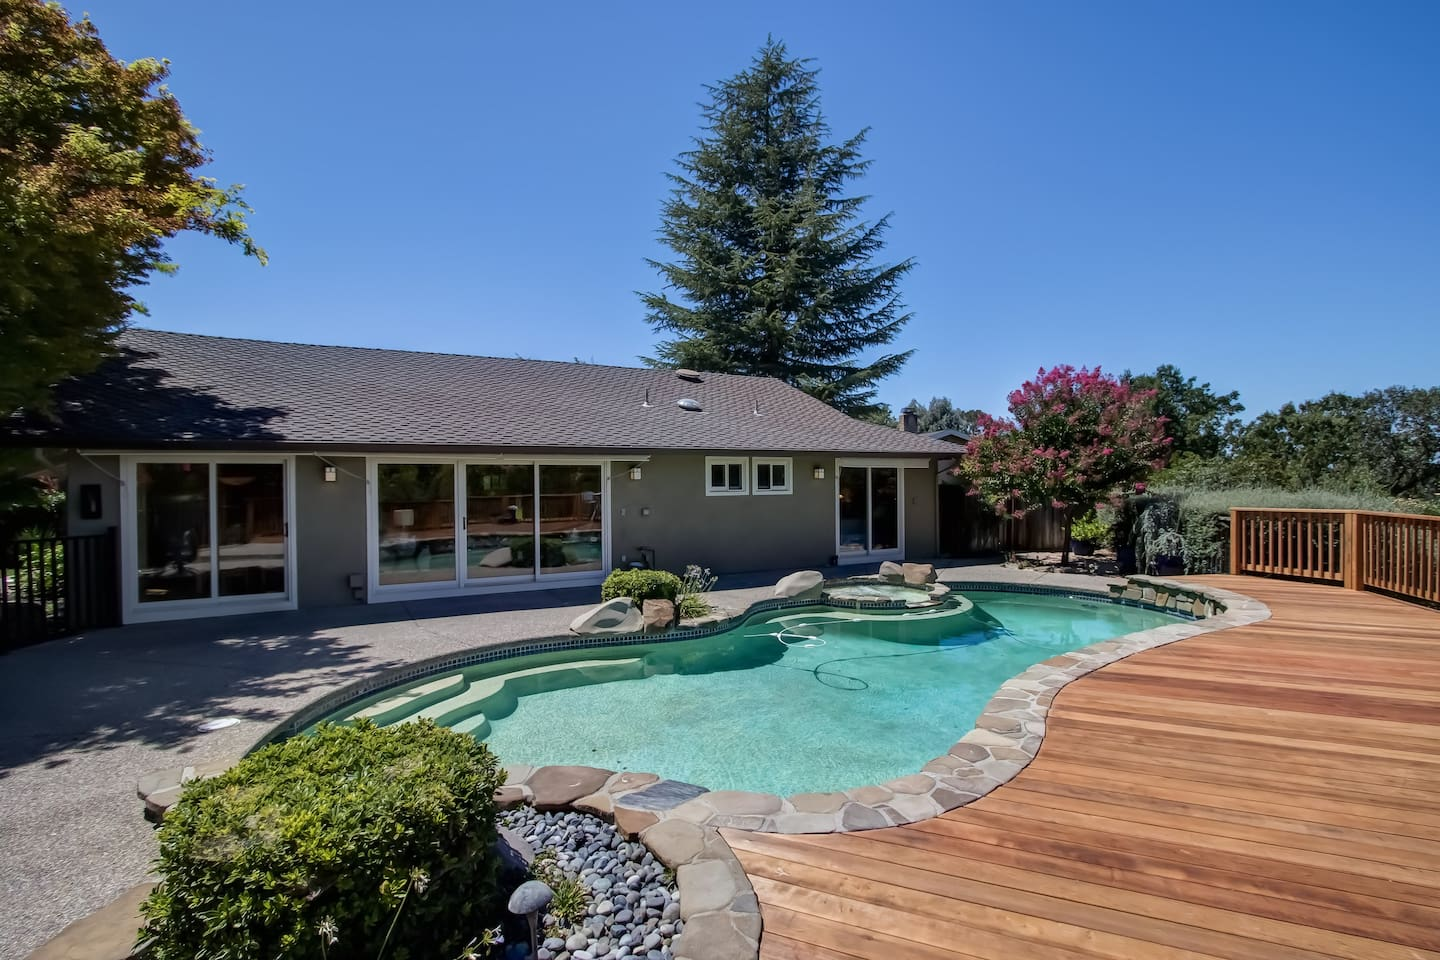 Pool, spa, deck, and sound system with outdoor speakers.